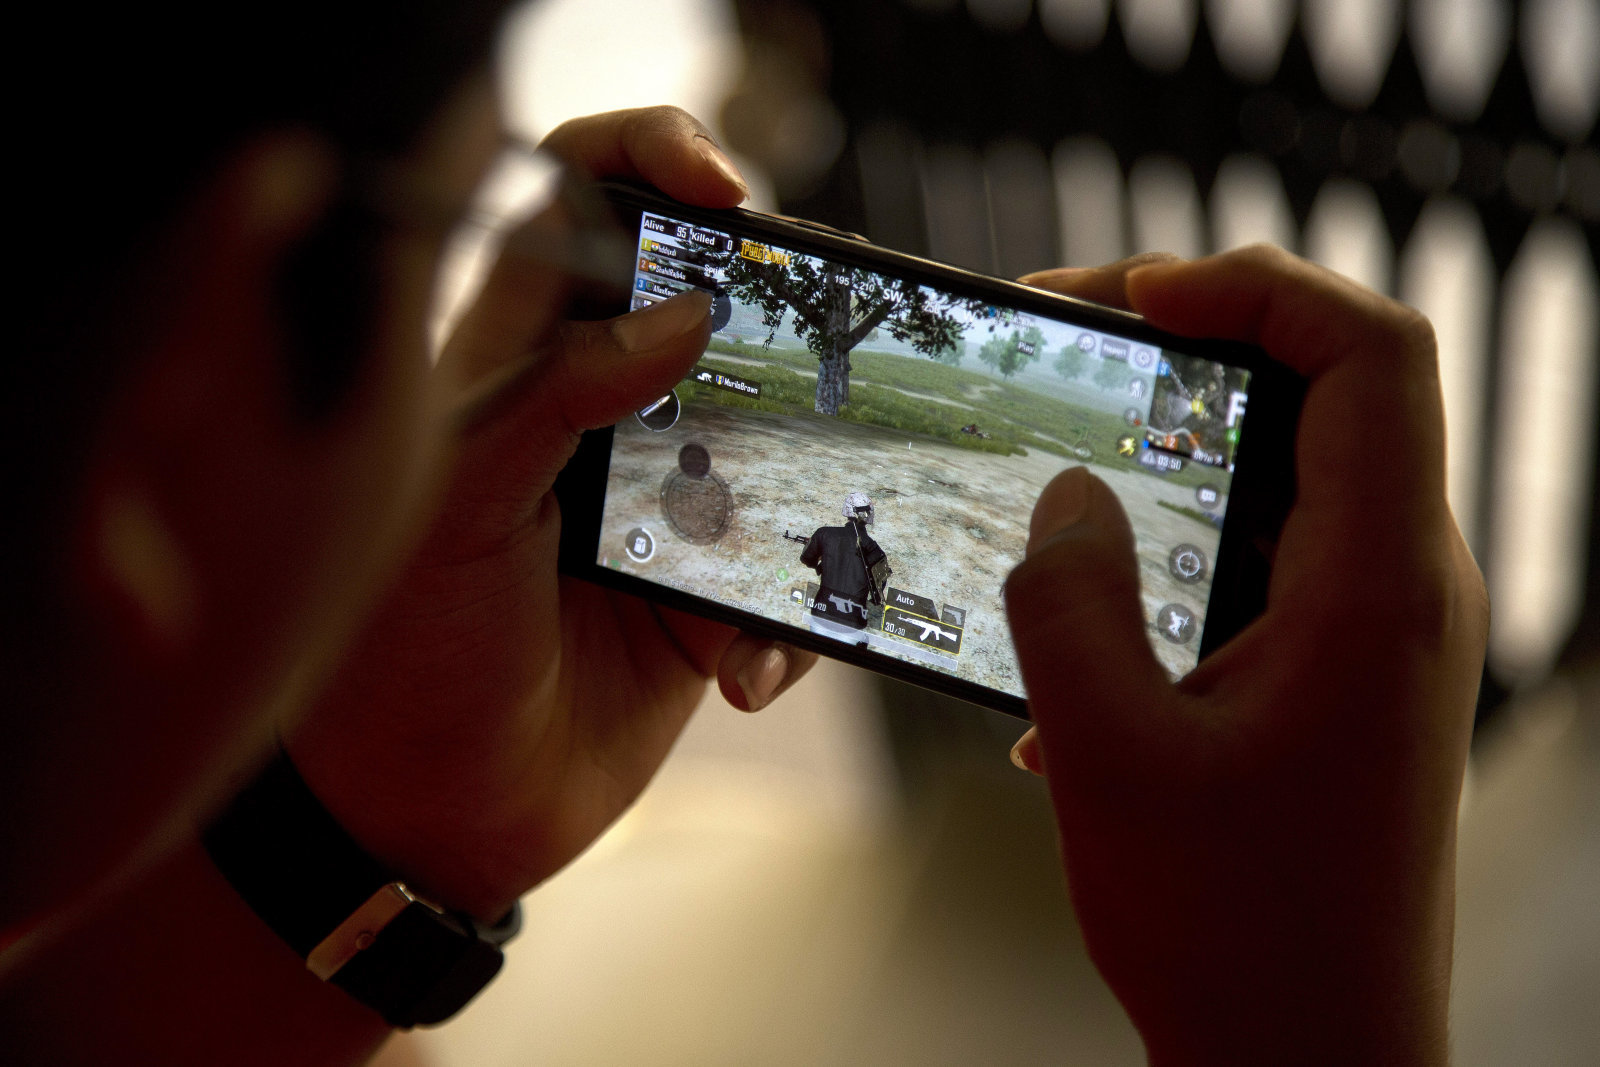 An Indian boy plays an online game PUBG on his mobile phone sitting outside his house  in Hyderabad, India, Friday, April 5, 2019. A boy's suicide in India after his mother scolded him for playing the popular online game PlayerUnknown's Battlegrounds has inflamed a debate across the country over whether the game should be banned. (AP Photo/ Mahesh Kumar A.)